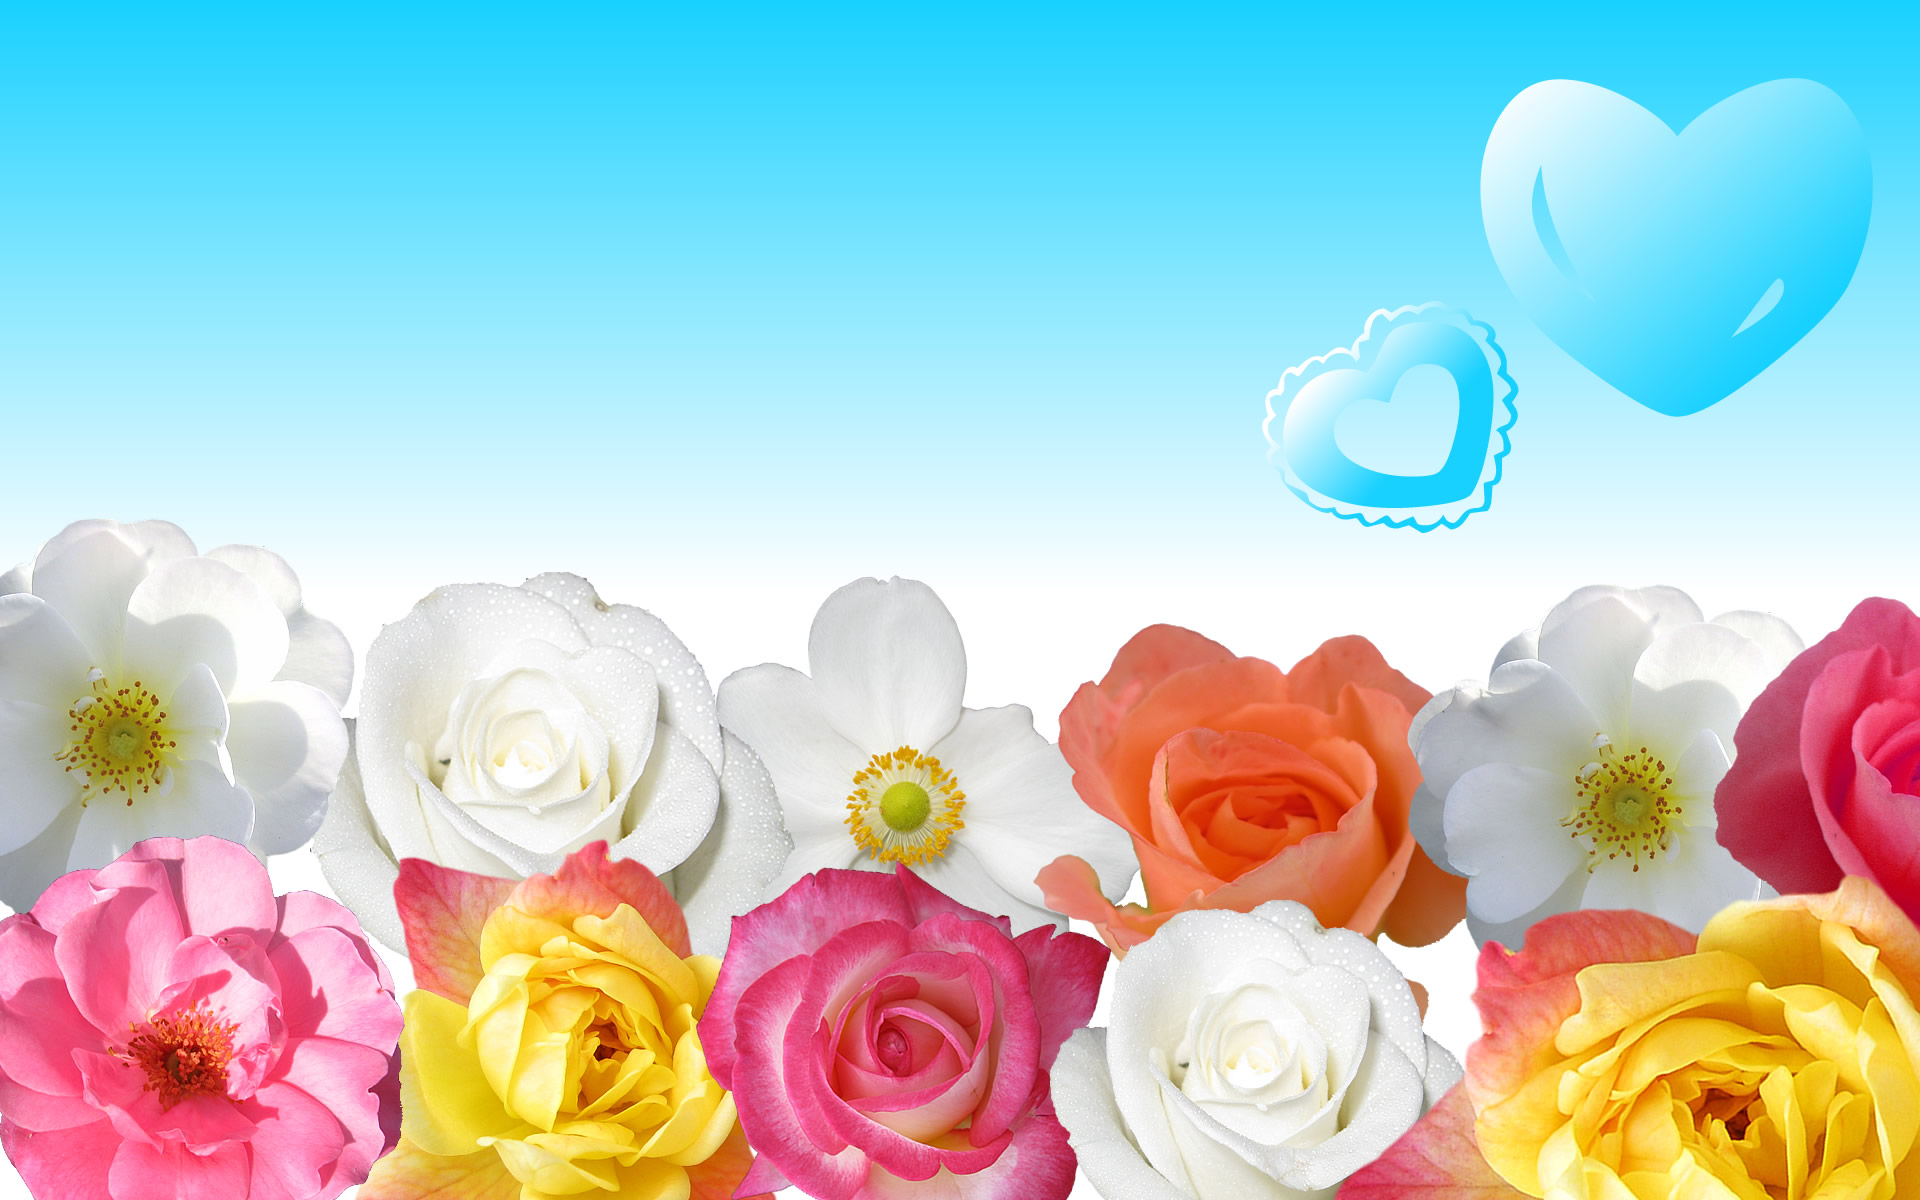 Flower Power Wallpaper Photo : download Full High resolution